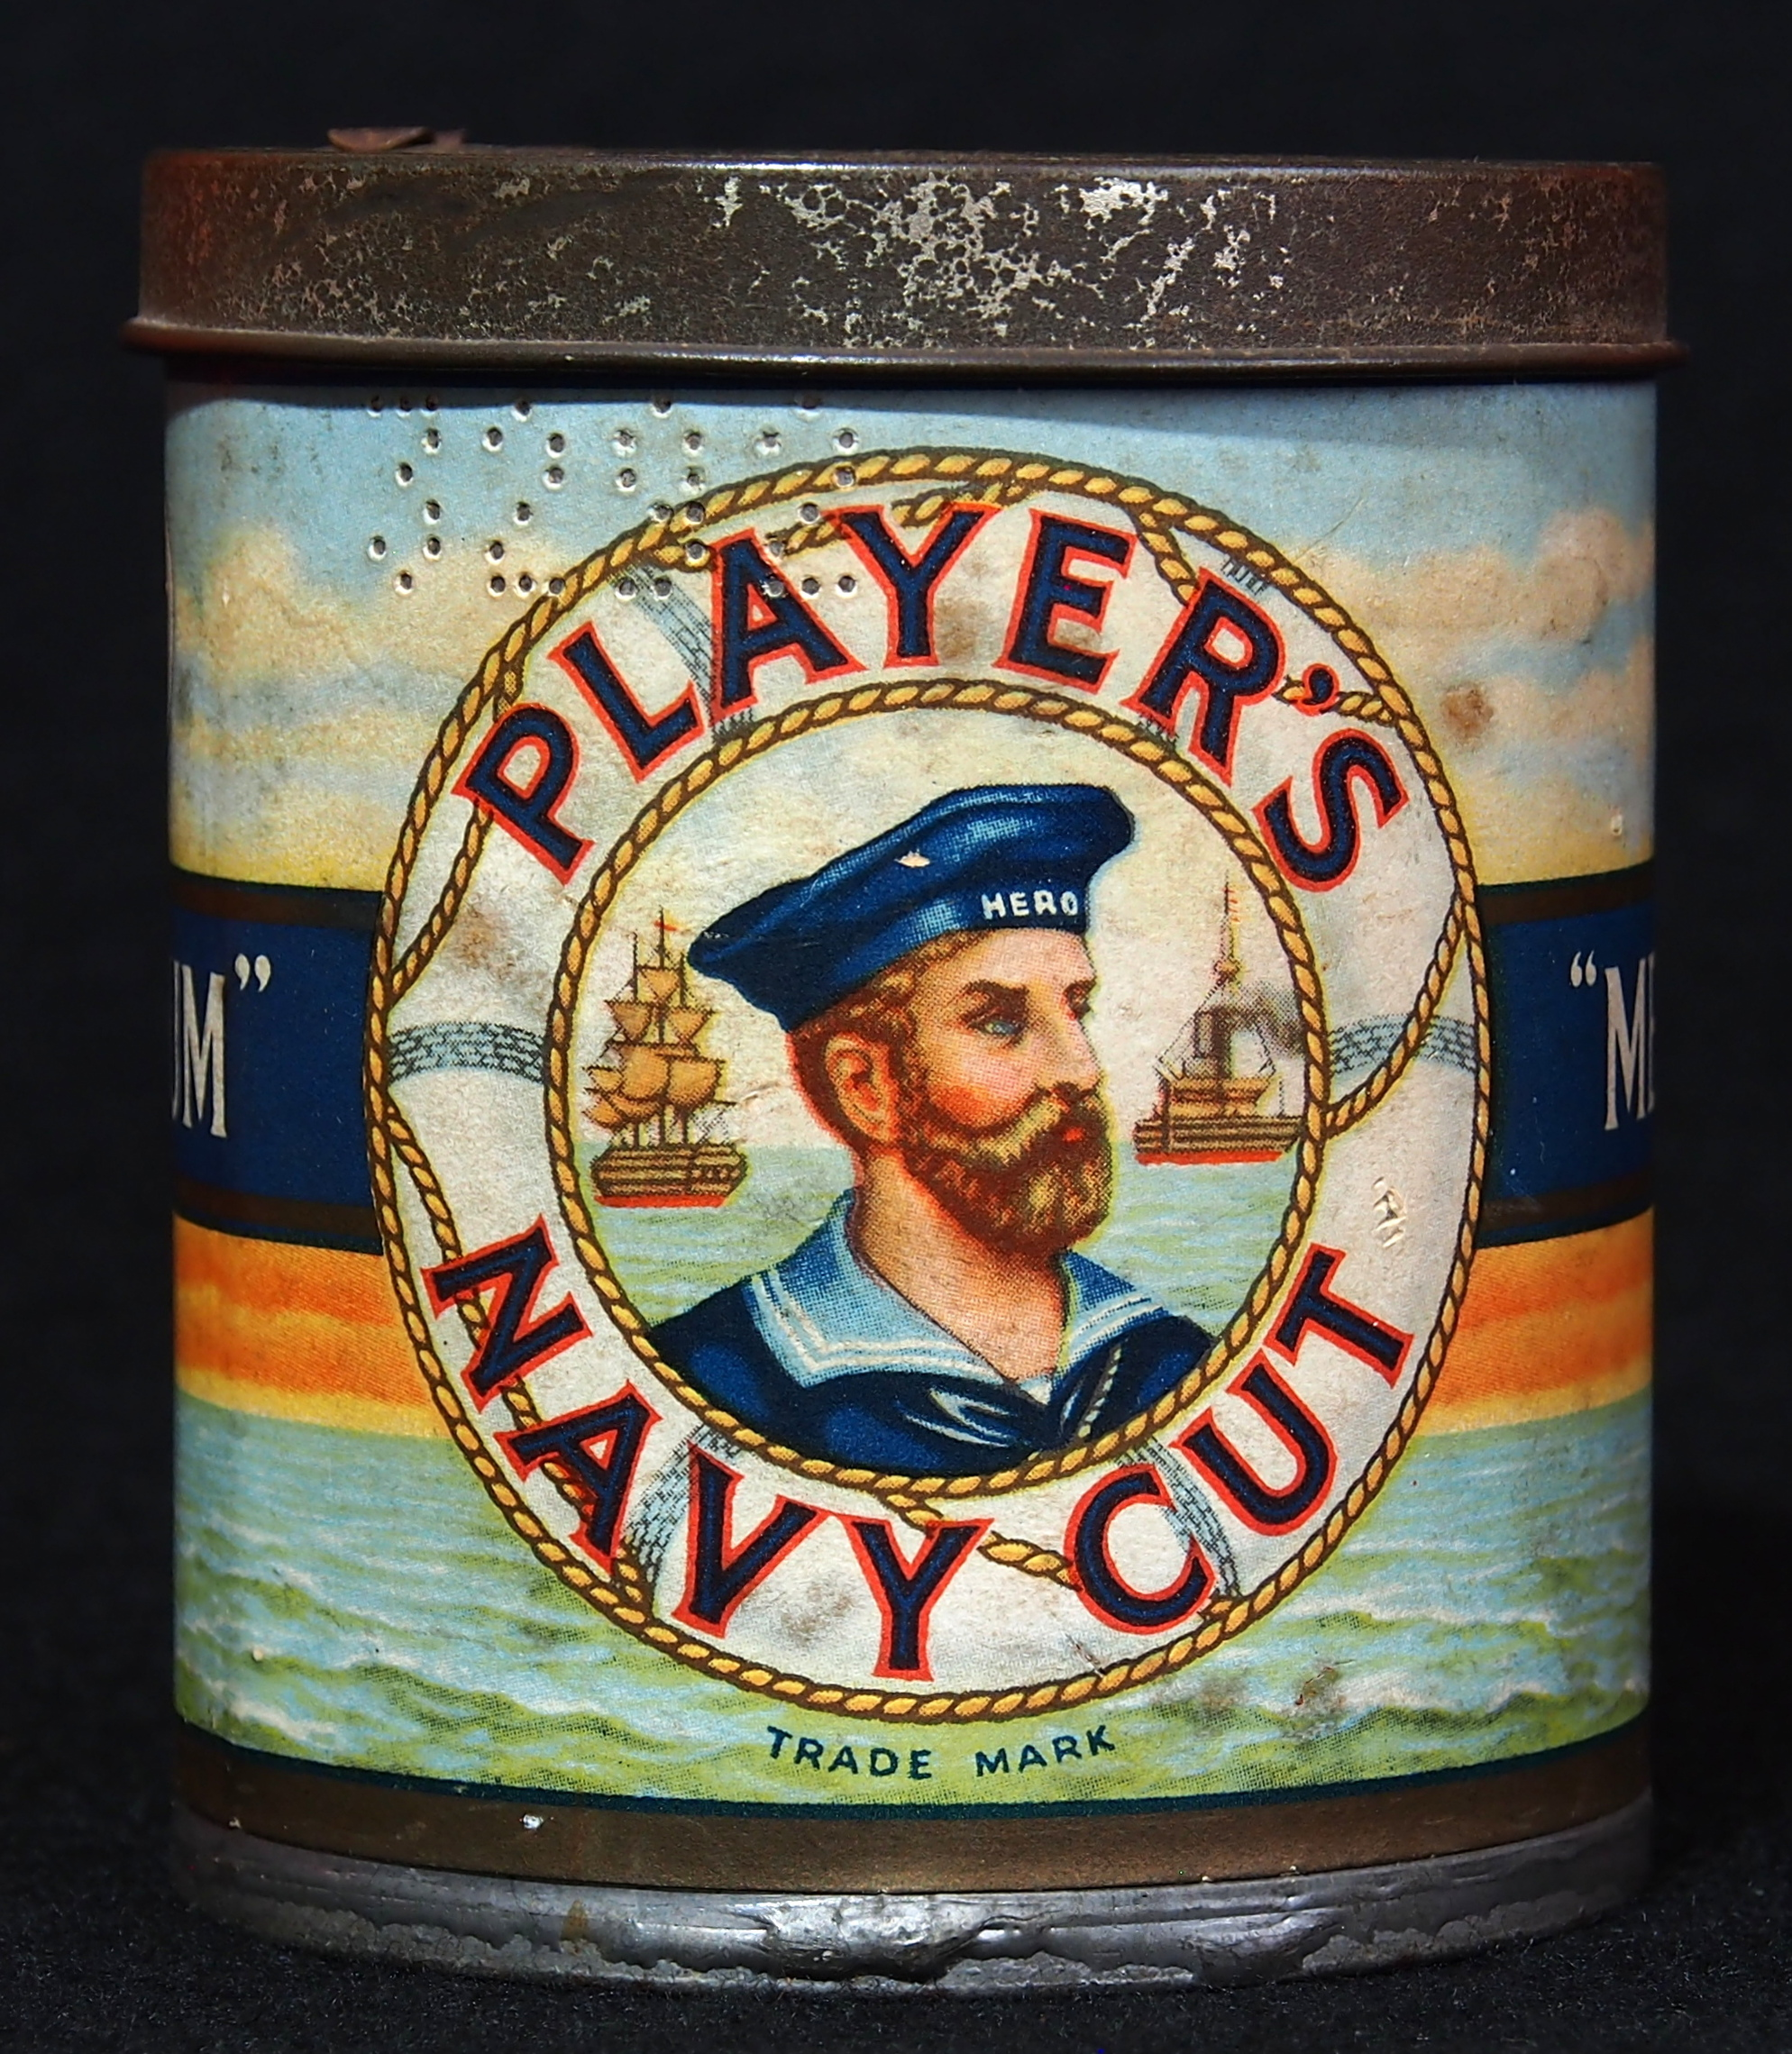 File Players Navy Cut Medium 50 Cigarettes Tin  Foto01 Jpg